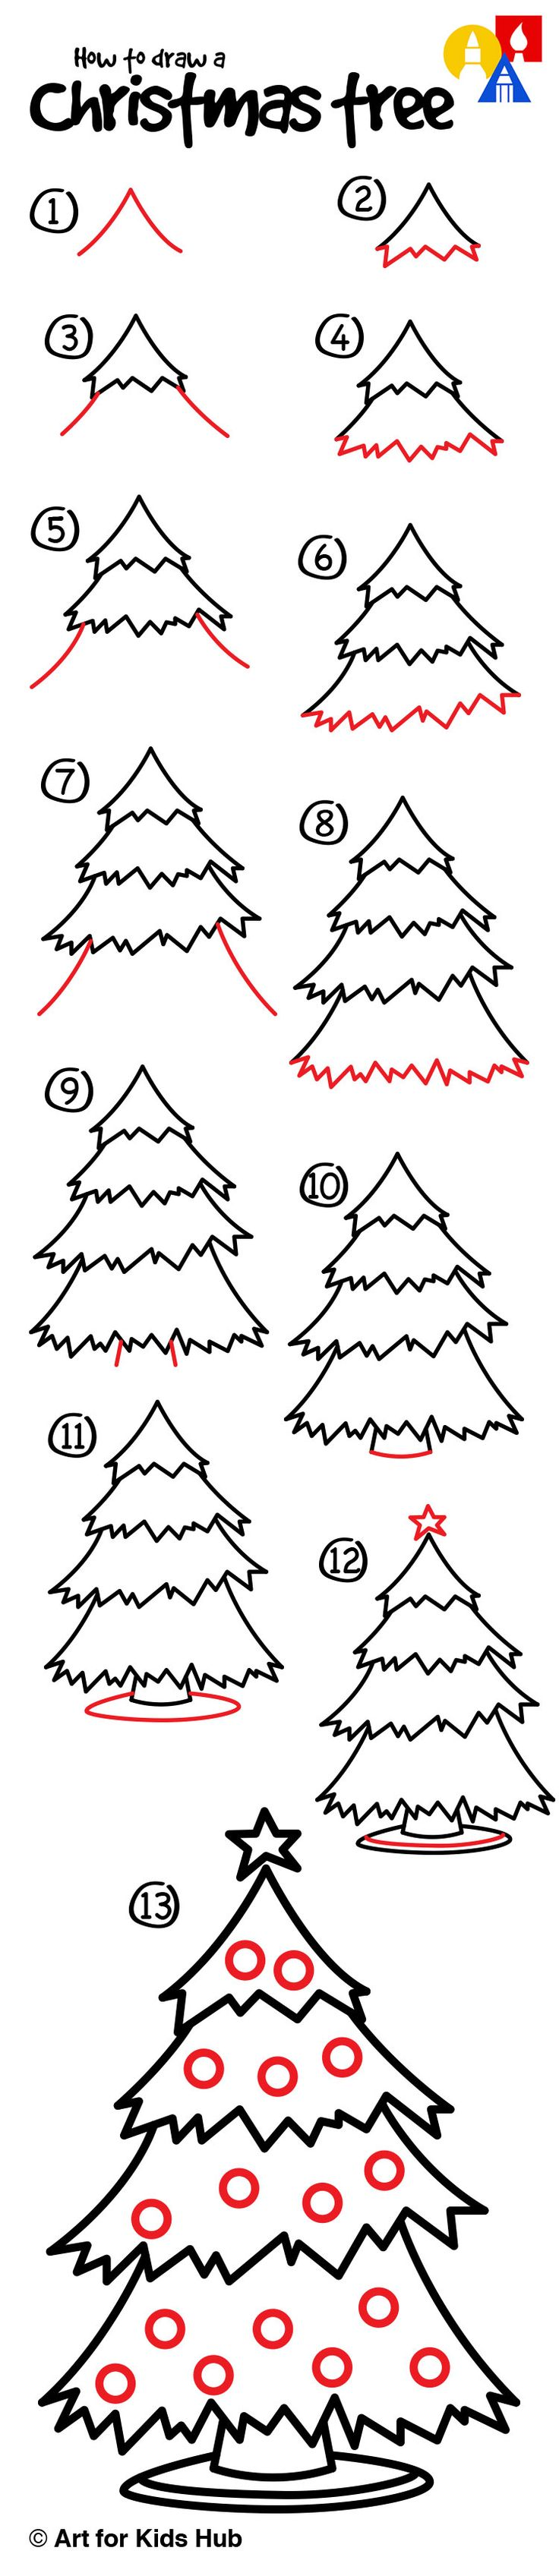 How to draw a Christmas tree!